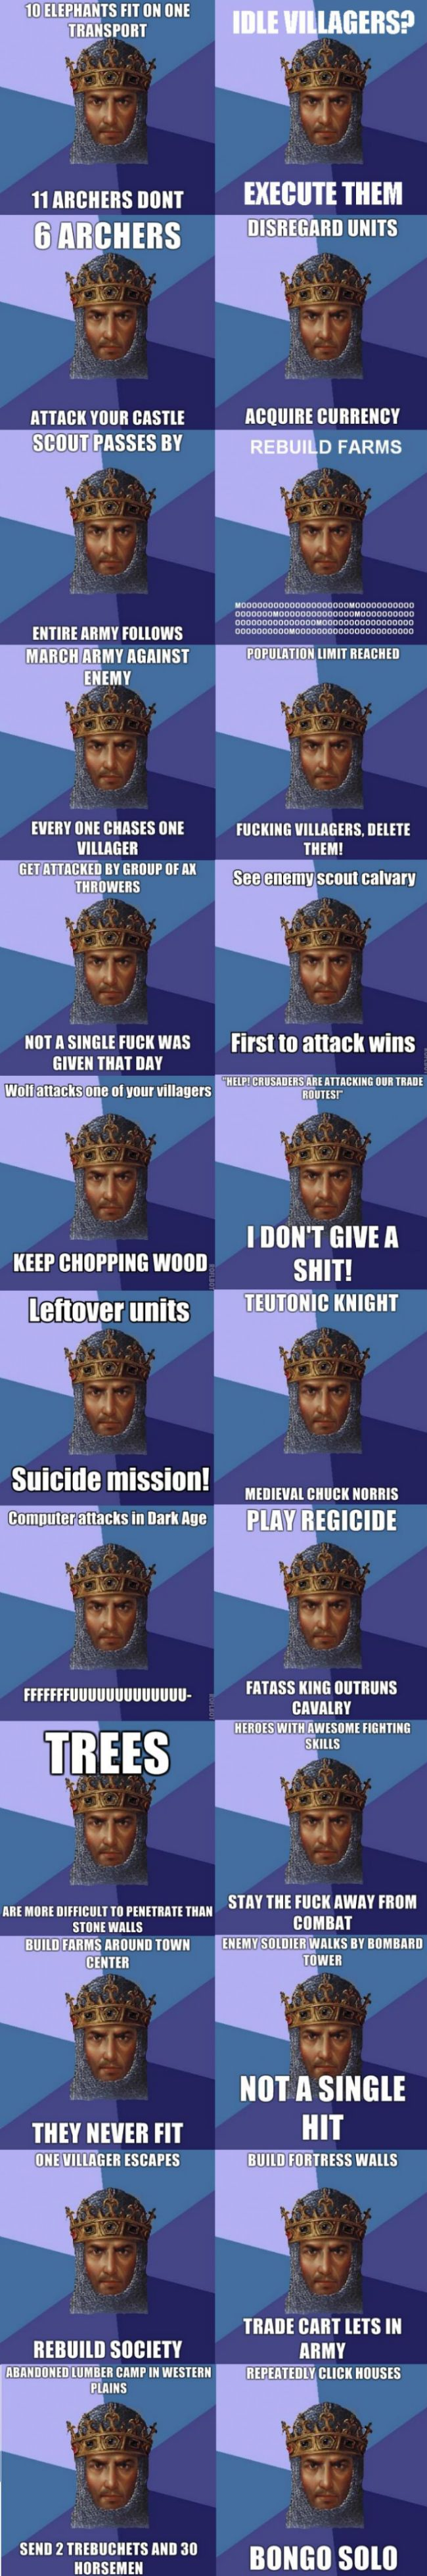 Oh my gosh, I remember this game... Age of Empires. Lol